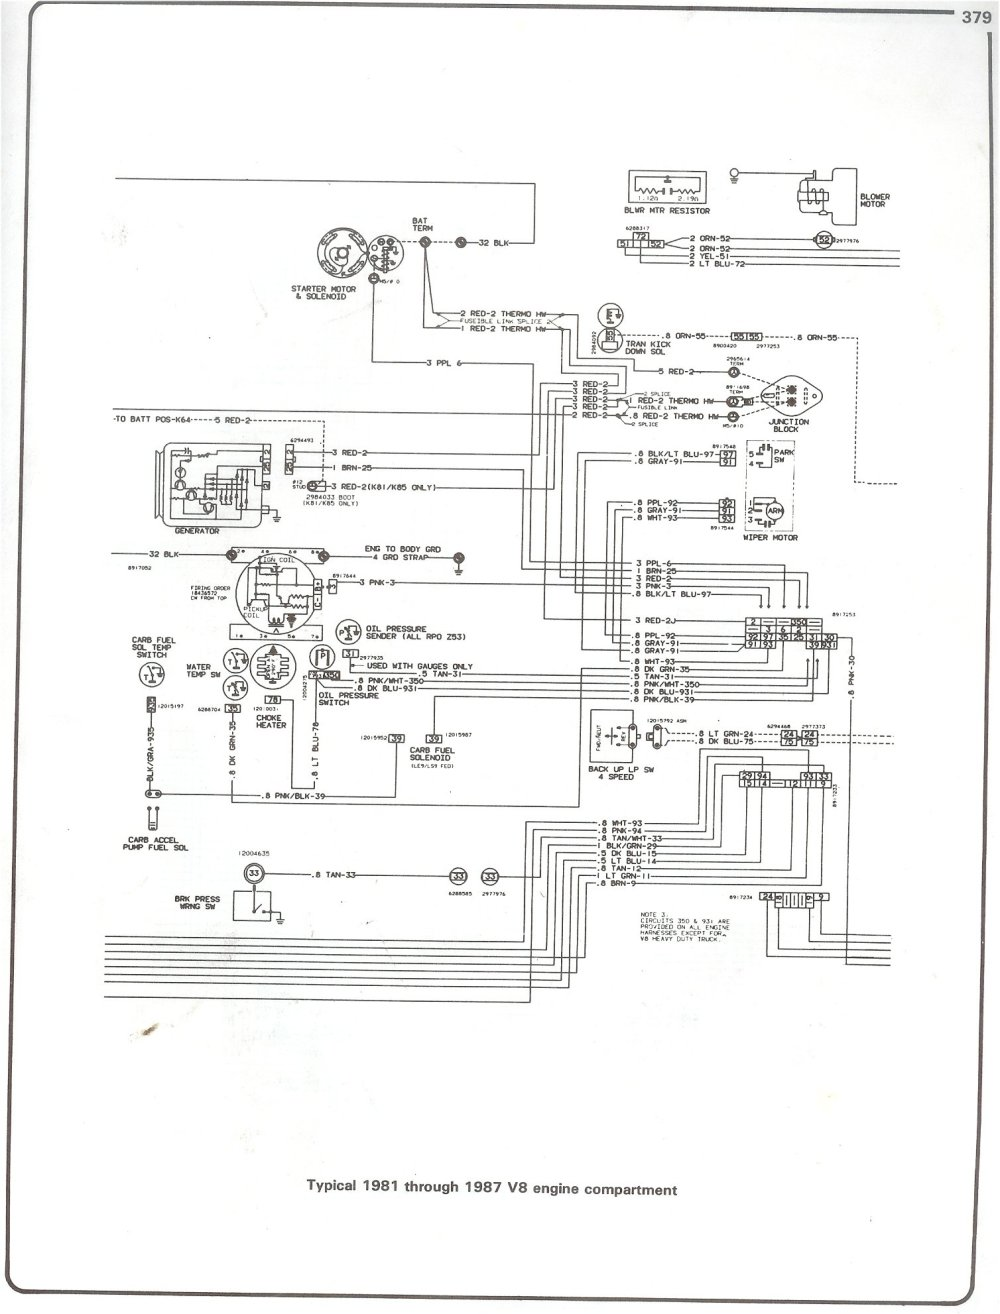 medium resolution of 1995 audi cabriolet fuse box diagram wiring library 2002 audi a4 fuse box location 1995 audi cabriolet fuse box diagram